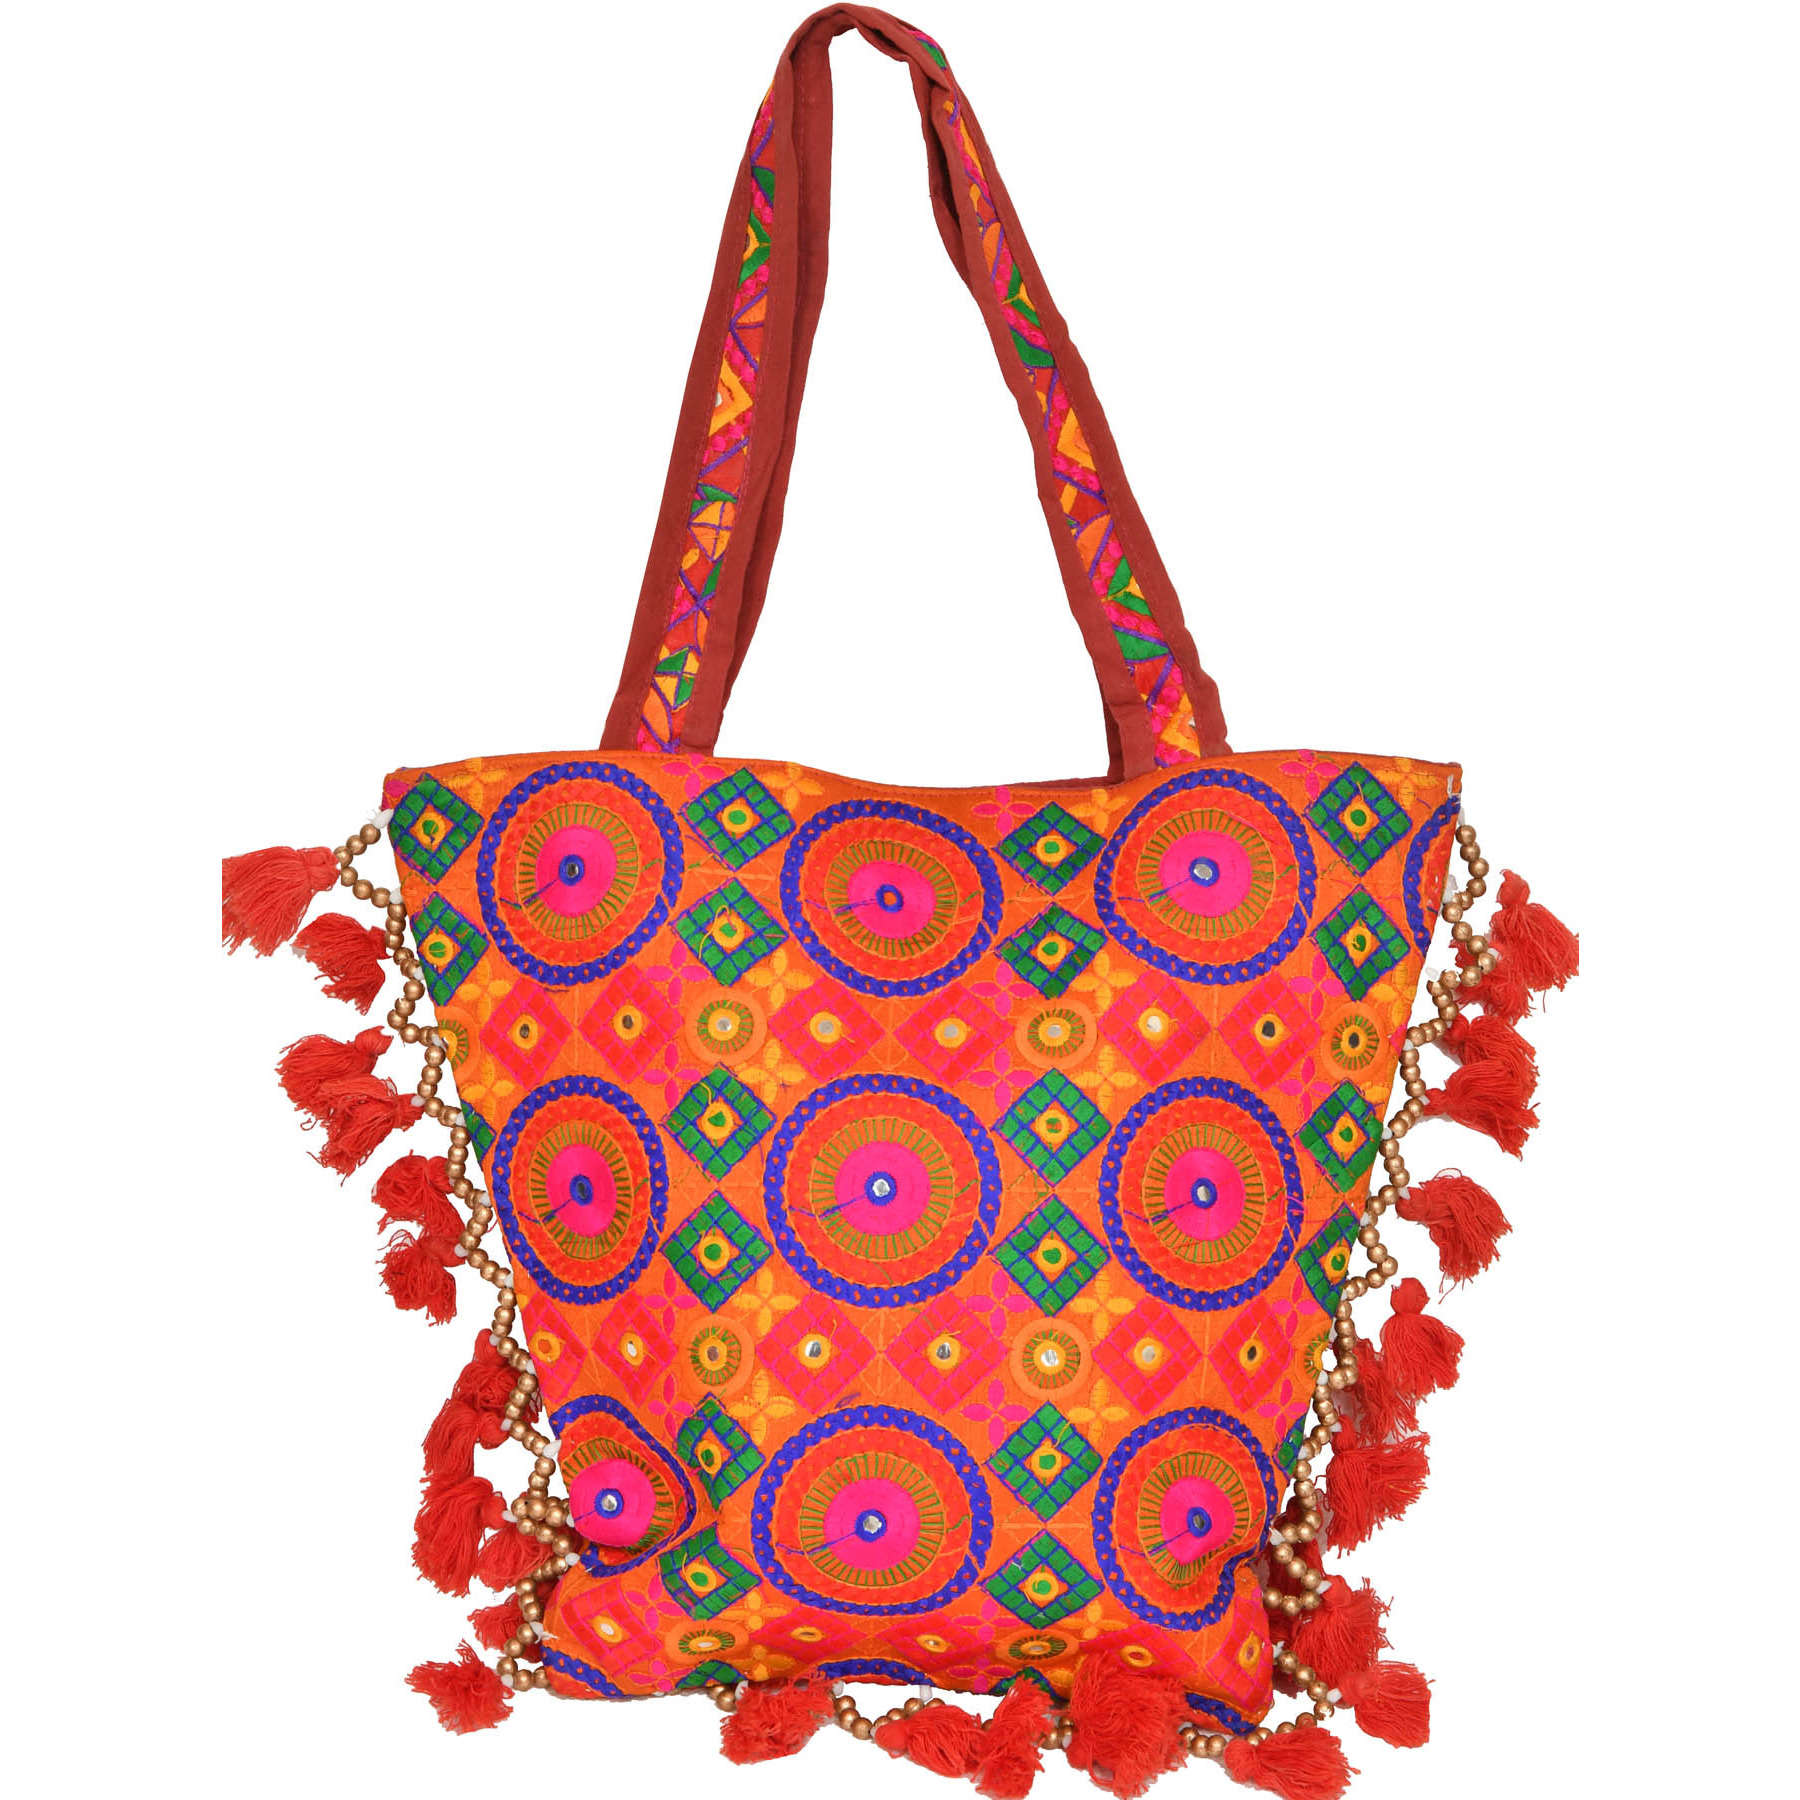 Persimmon-Orange Shopper Bag with Embroidered Chakras and Mirrors